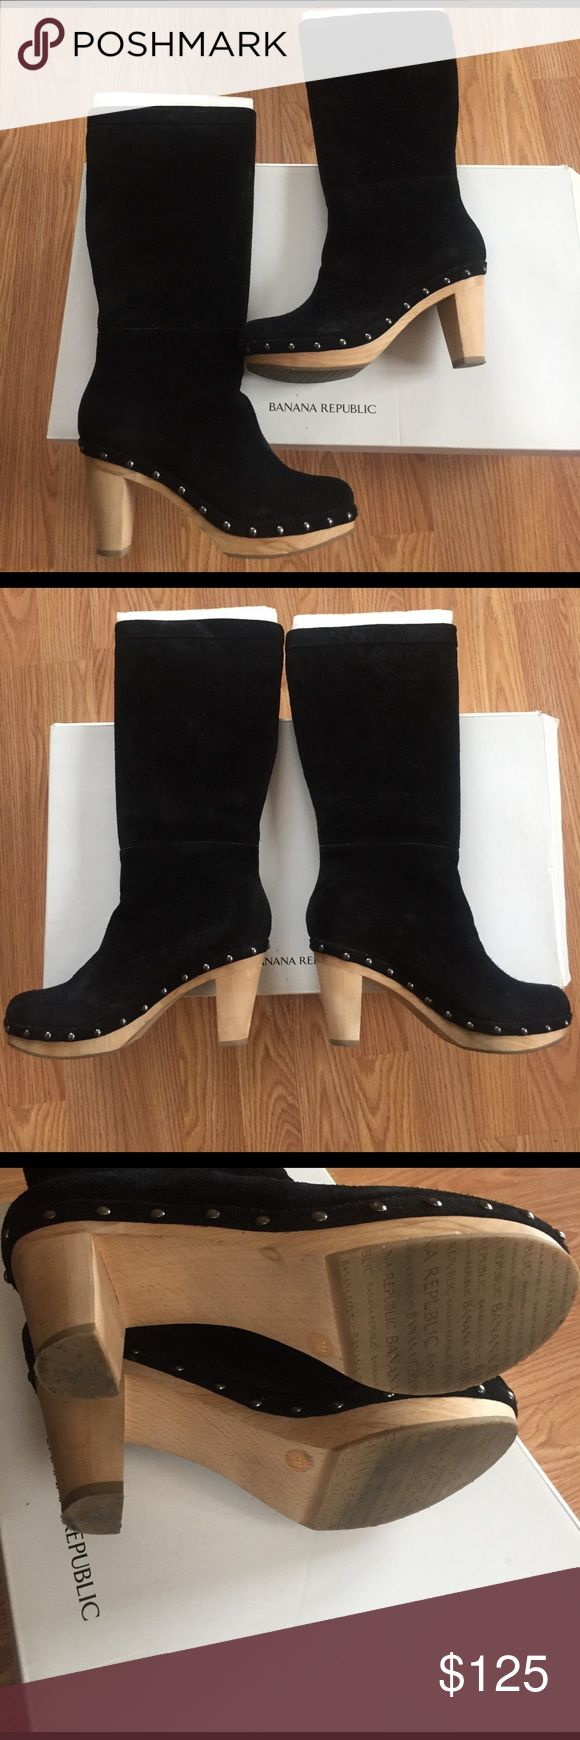 Black sued studded Banana republic boot Black sued studded Banana republic boot size 7 comes with box worn for about an hour indoors. Wooded heal. Banana Republic Shoes Heeled Boots